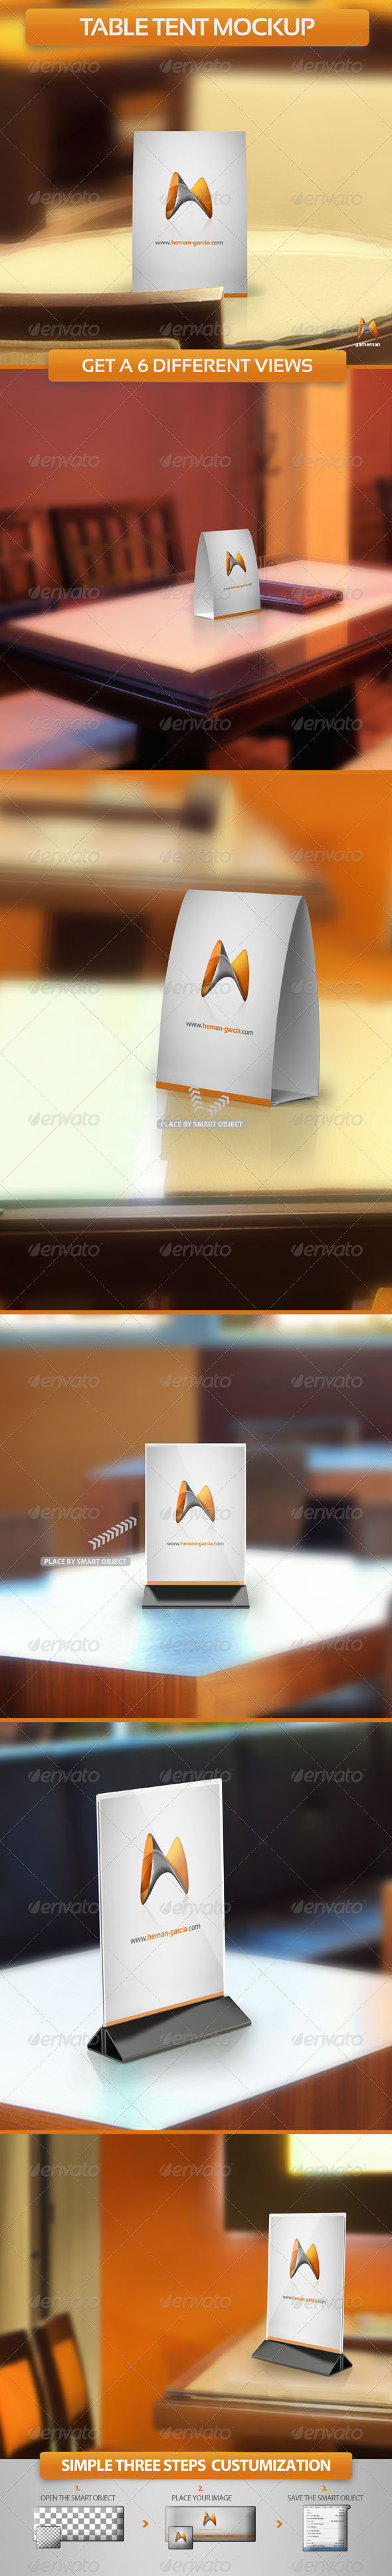 GraphicRiver Table Tent Mockup 5131015